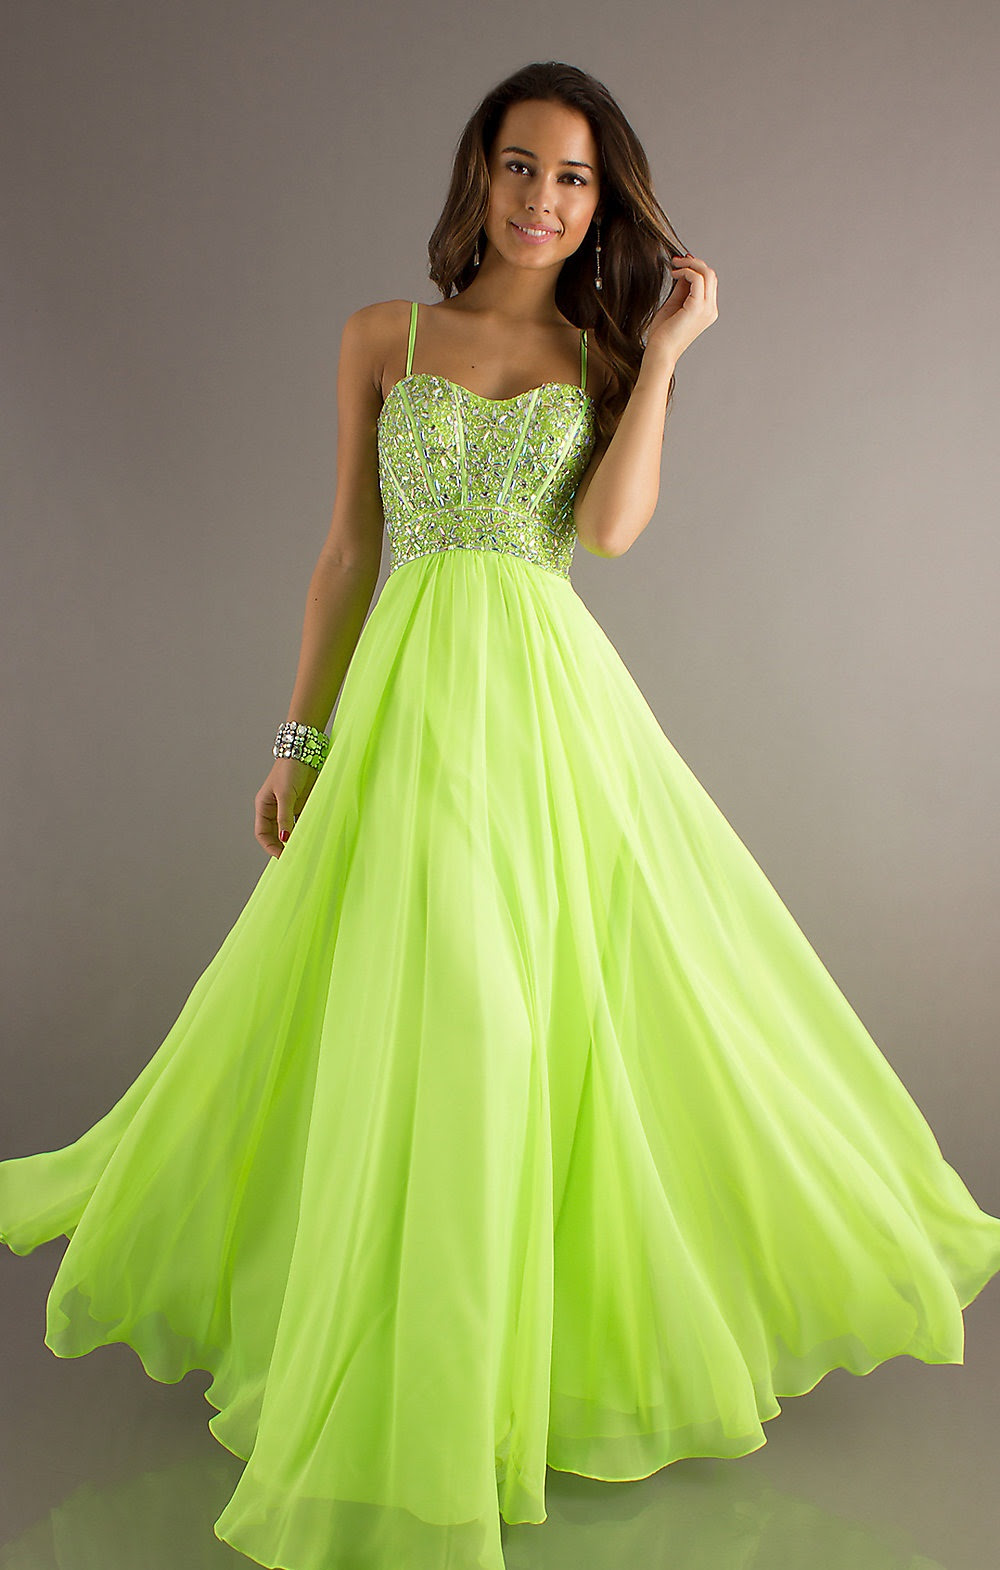 33+ Wedding Dress With Green PNG